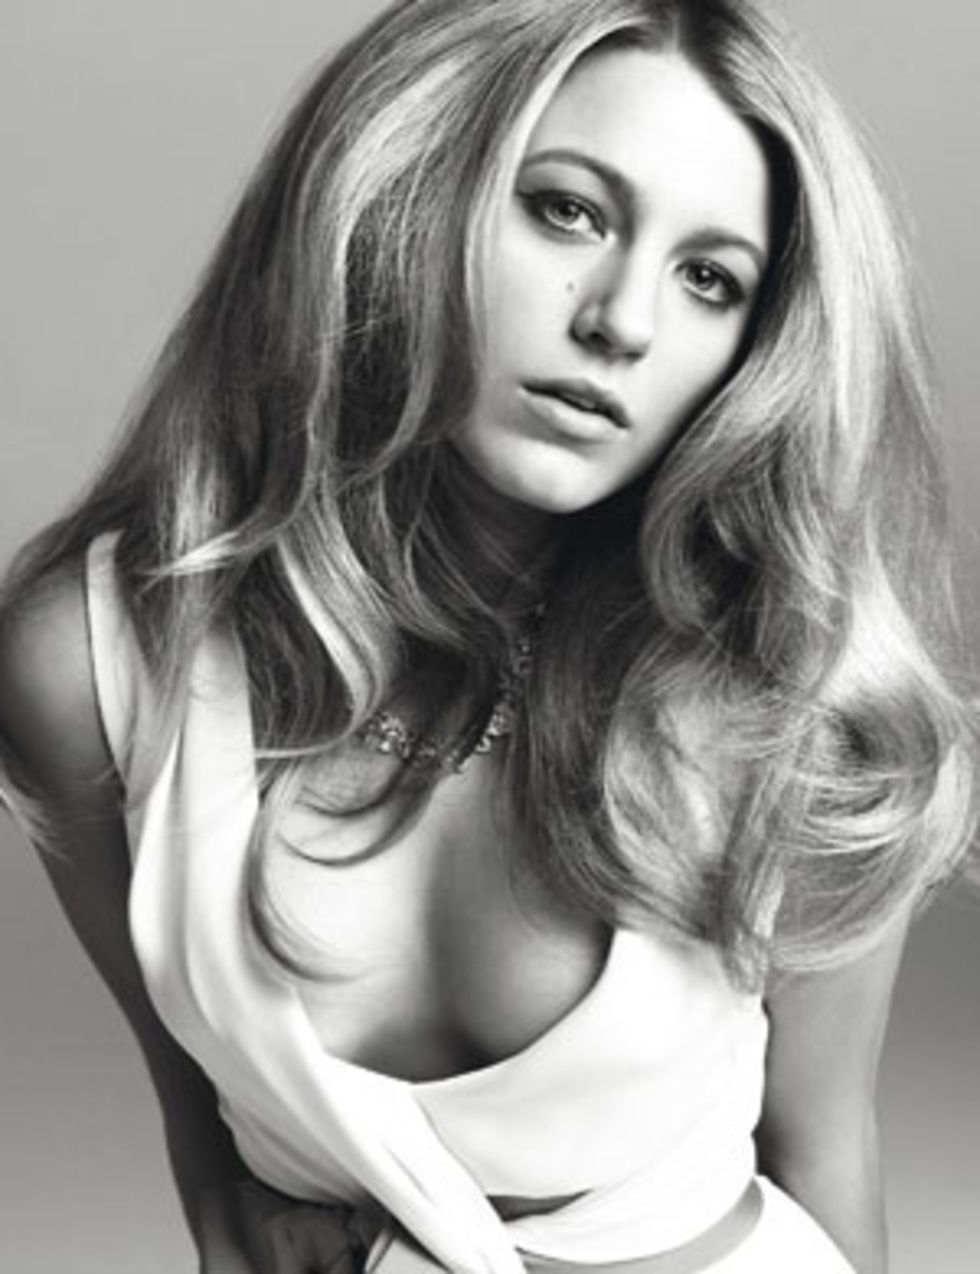 Blake lively w magazine dec 2008 hq scans nude (78 photos), Hot Celebrites pics